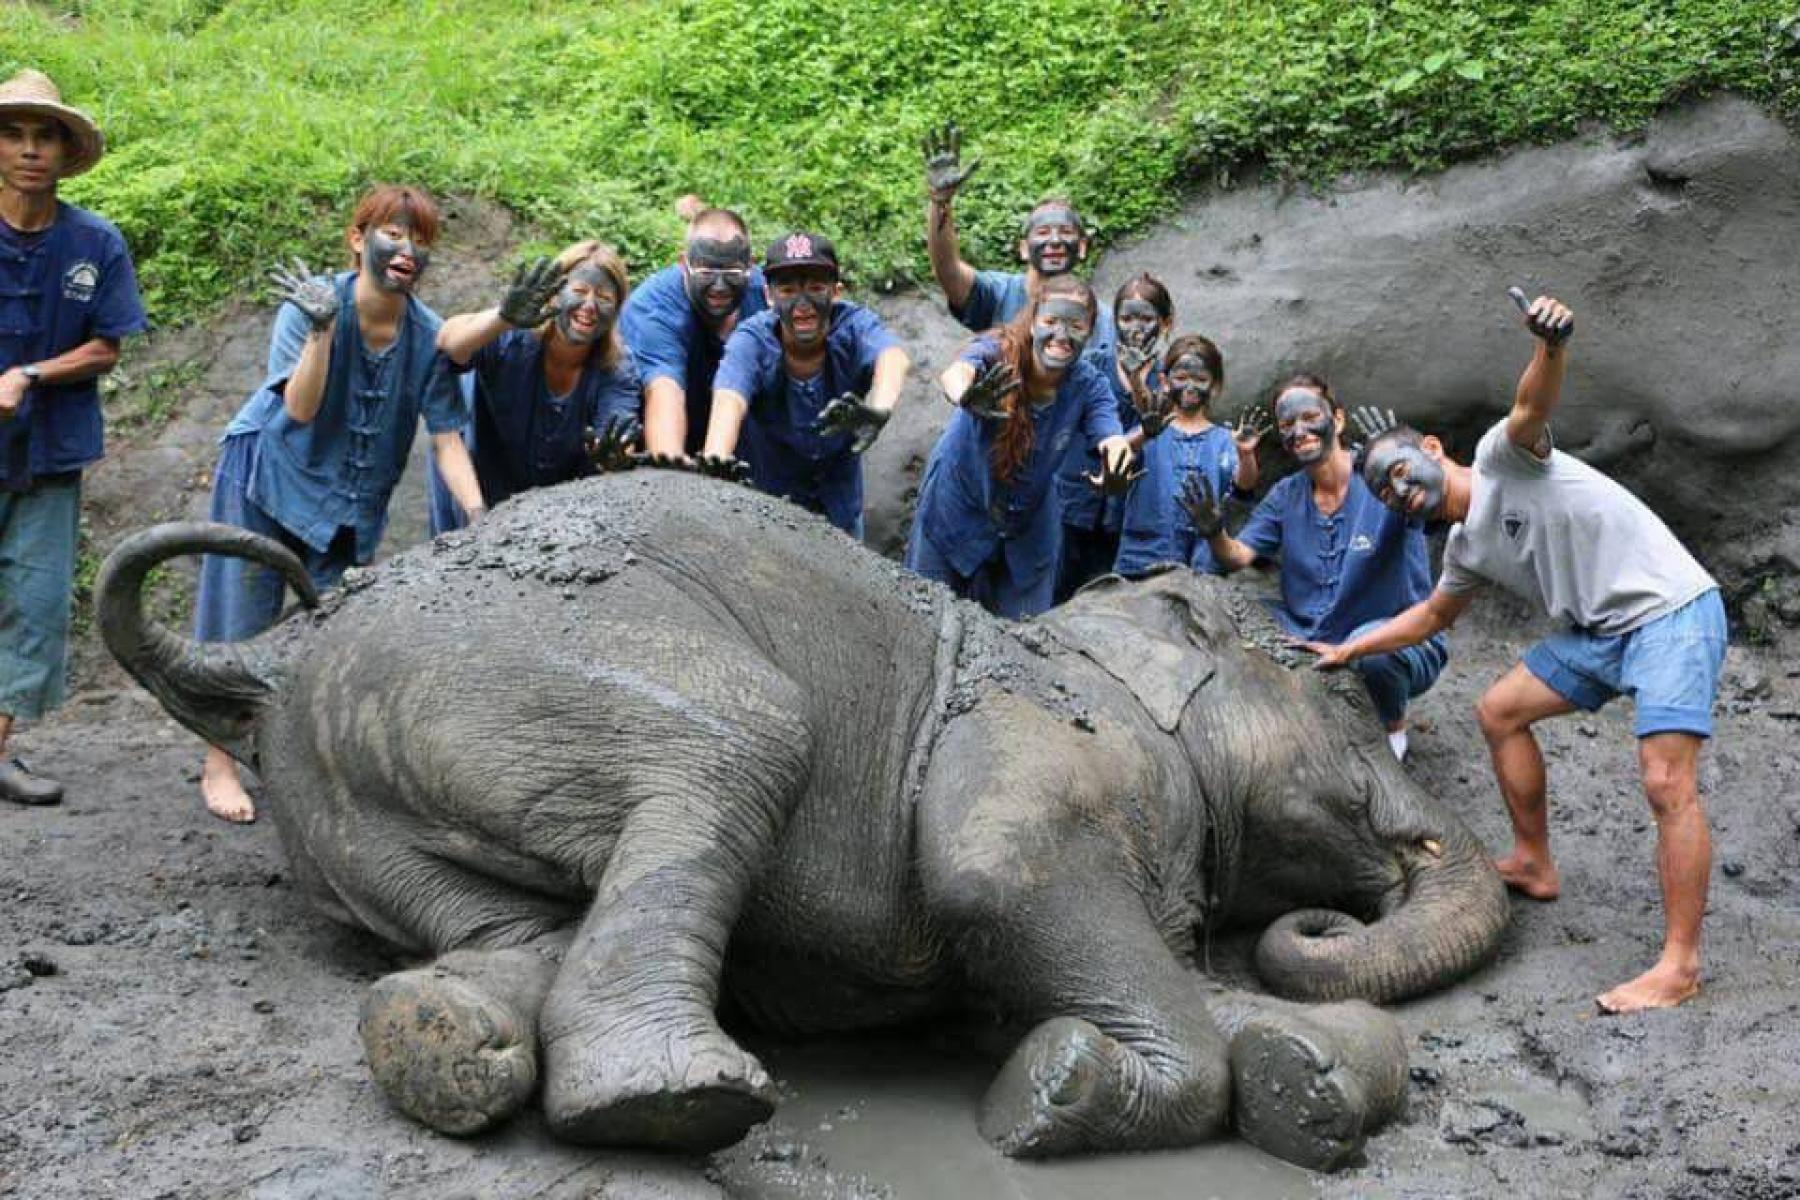 Elephant Black Mud Bath Spa starting at Chiang Mai Thailand